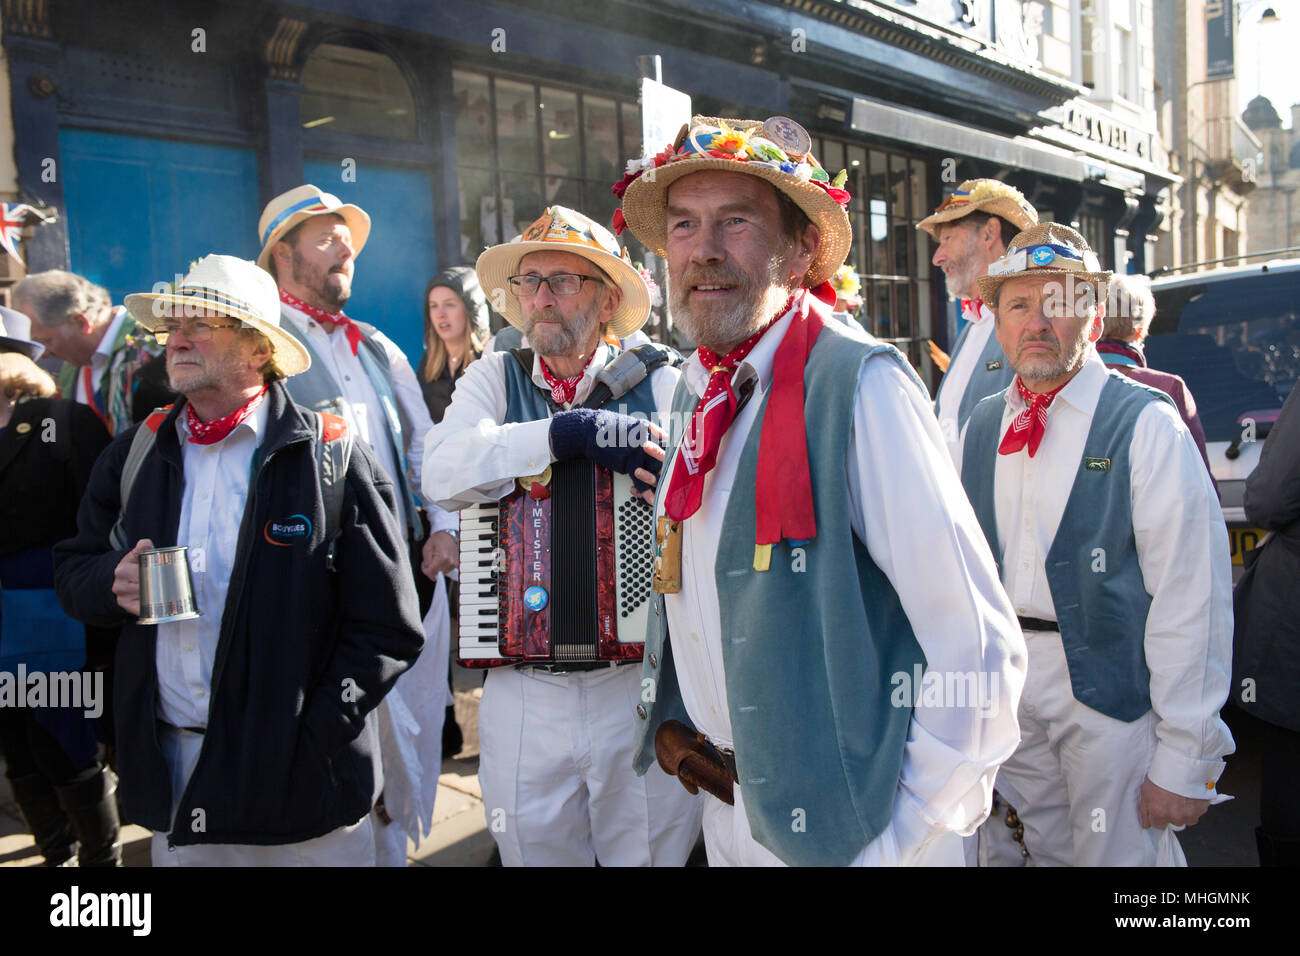 Oxford, UK 1st May, 2018. Thousands gather to hear the choir in Magdalen Tower at early morning to start the annual celebration. With the pubs and restaurant open in the early hours of the morning. Revellers often stay out all night from Balls in colleges. Credit: © Pete Lusabia/Alamy Live News - Stock Image